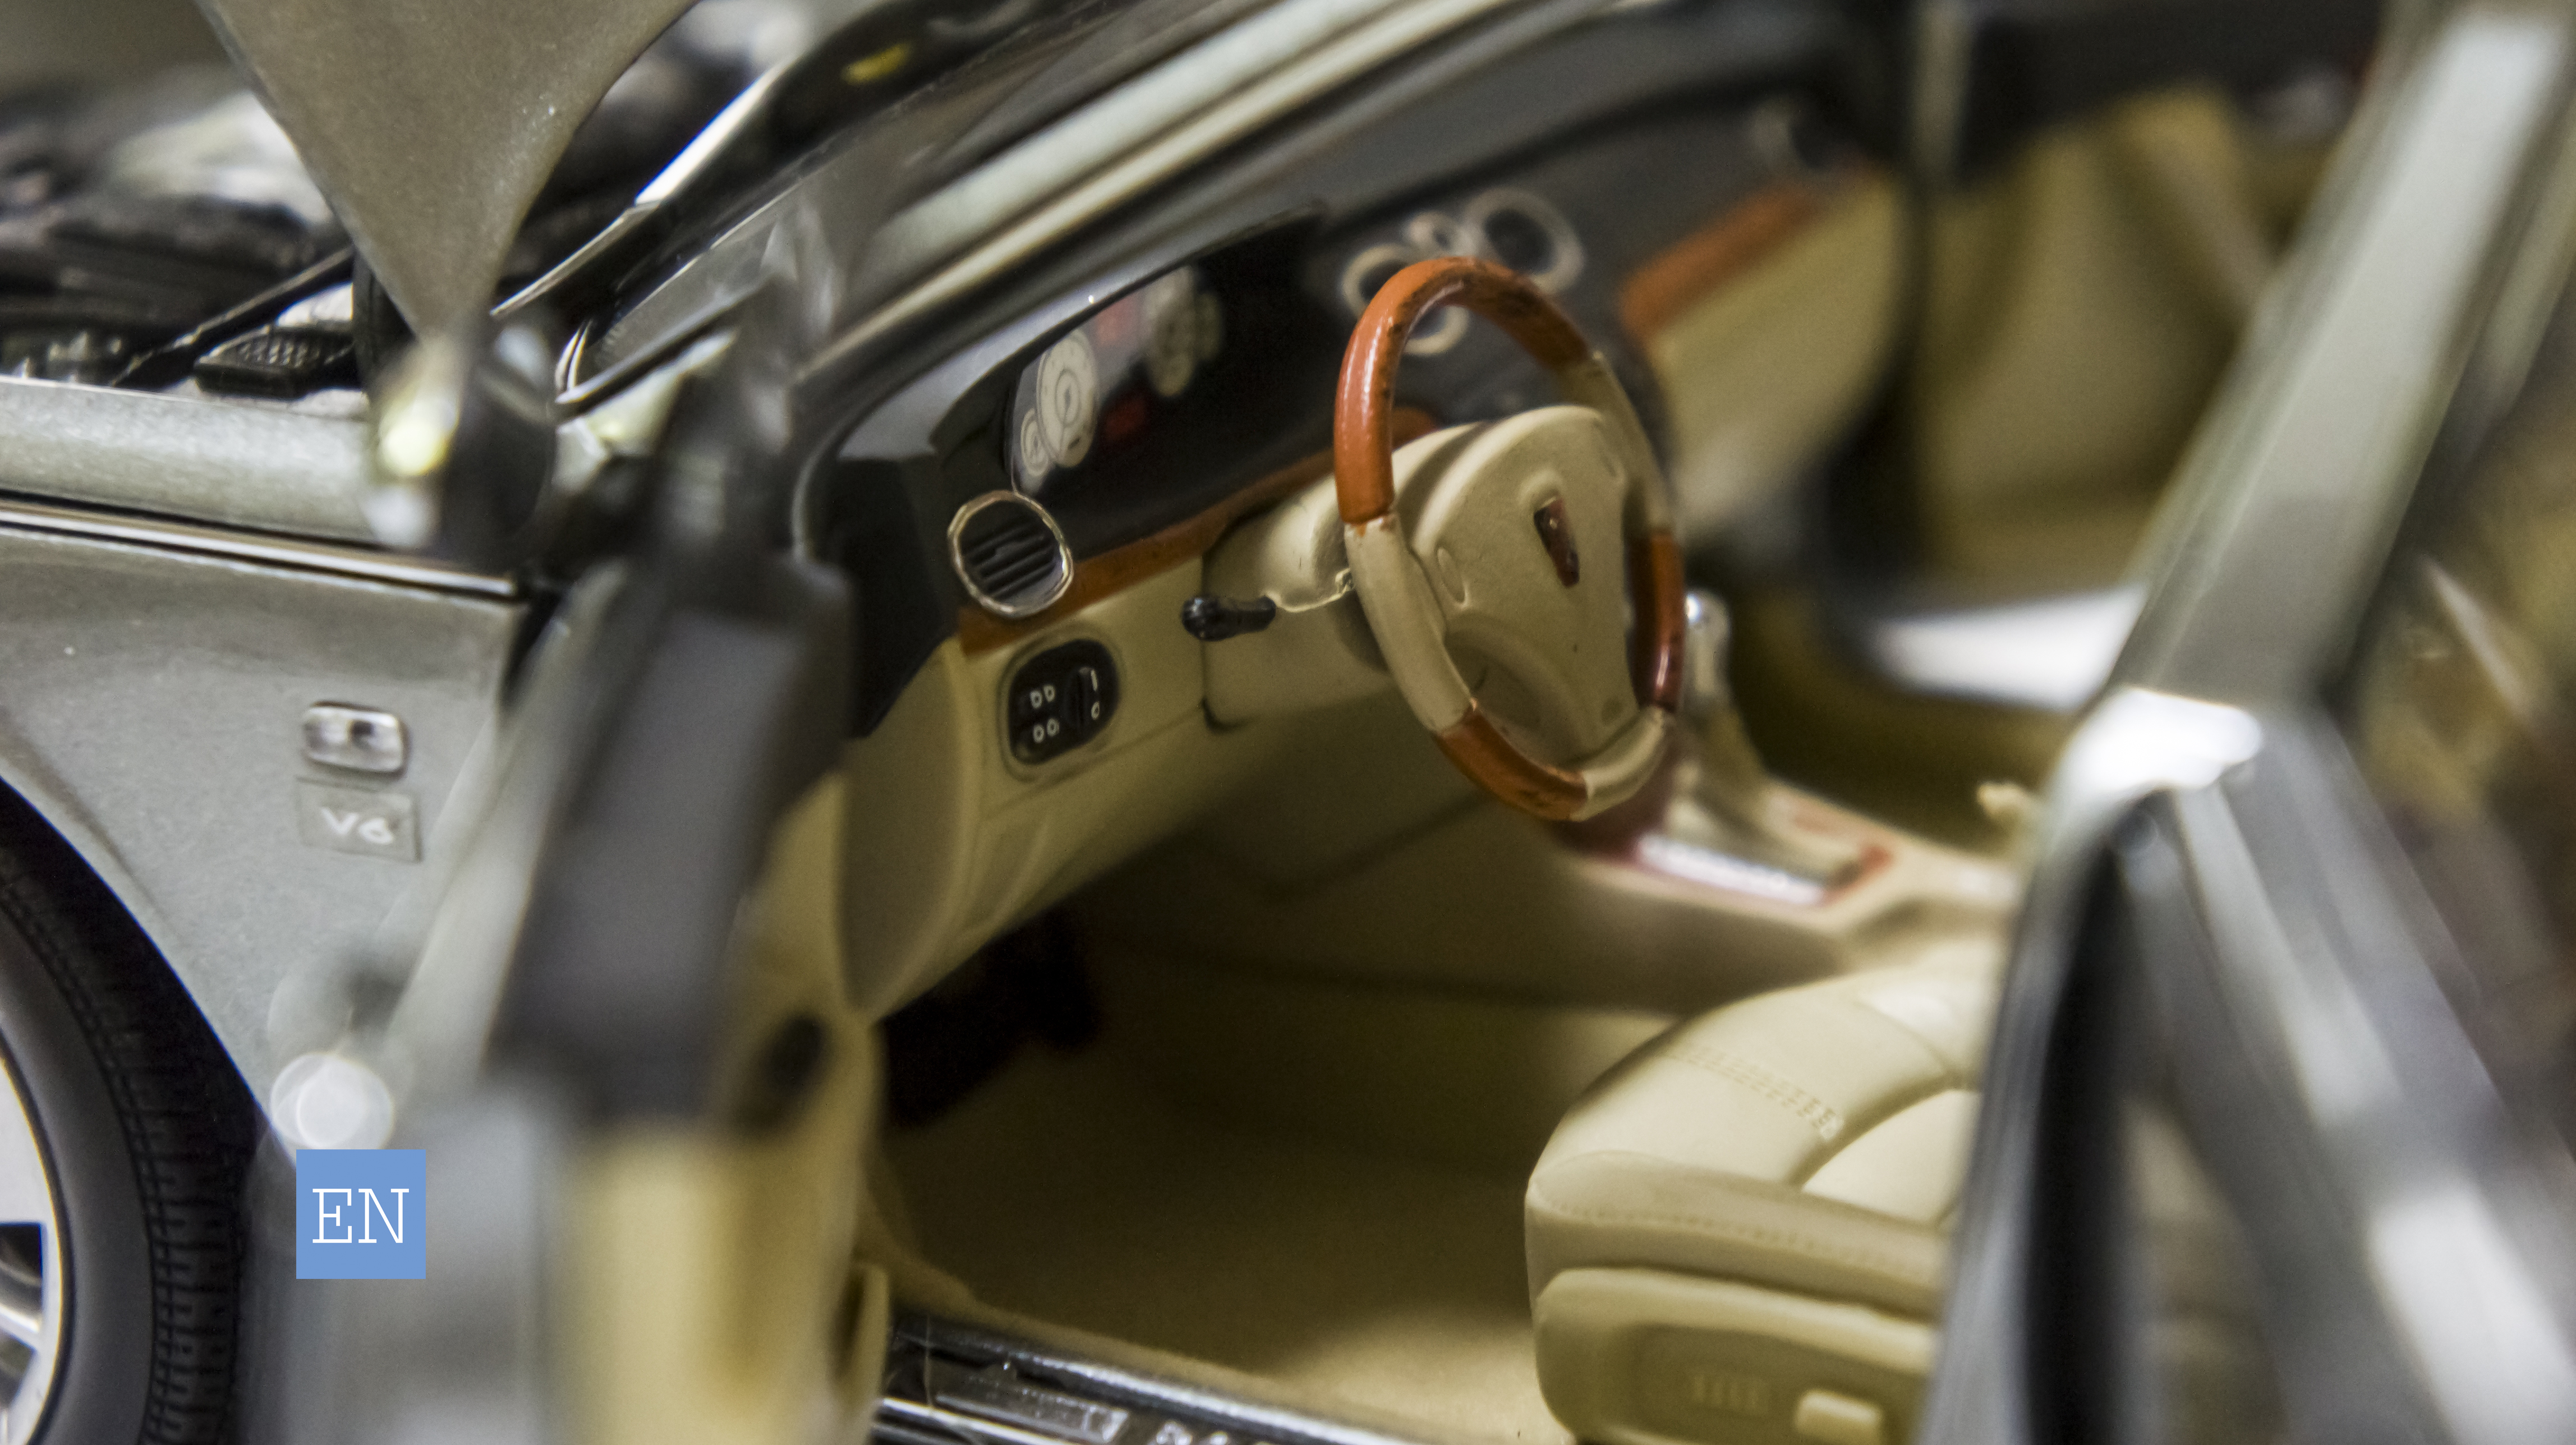 Roewe-750D - Model - Interior - Driver's side